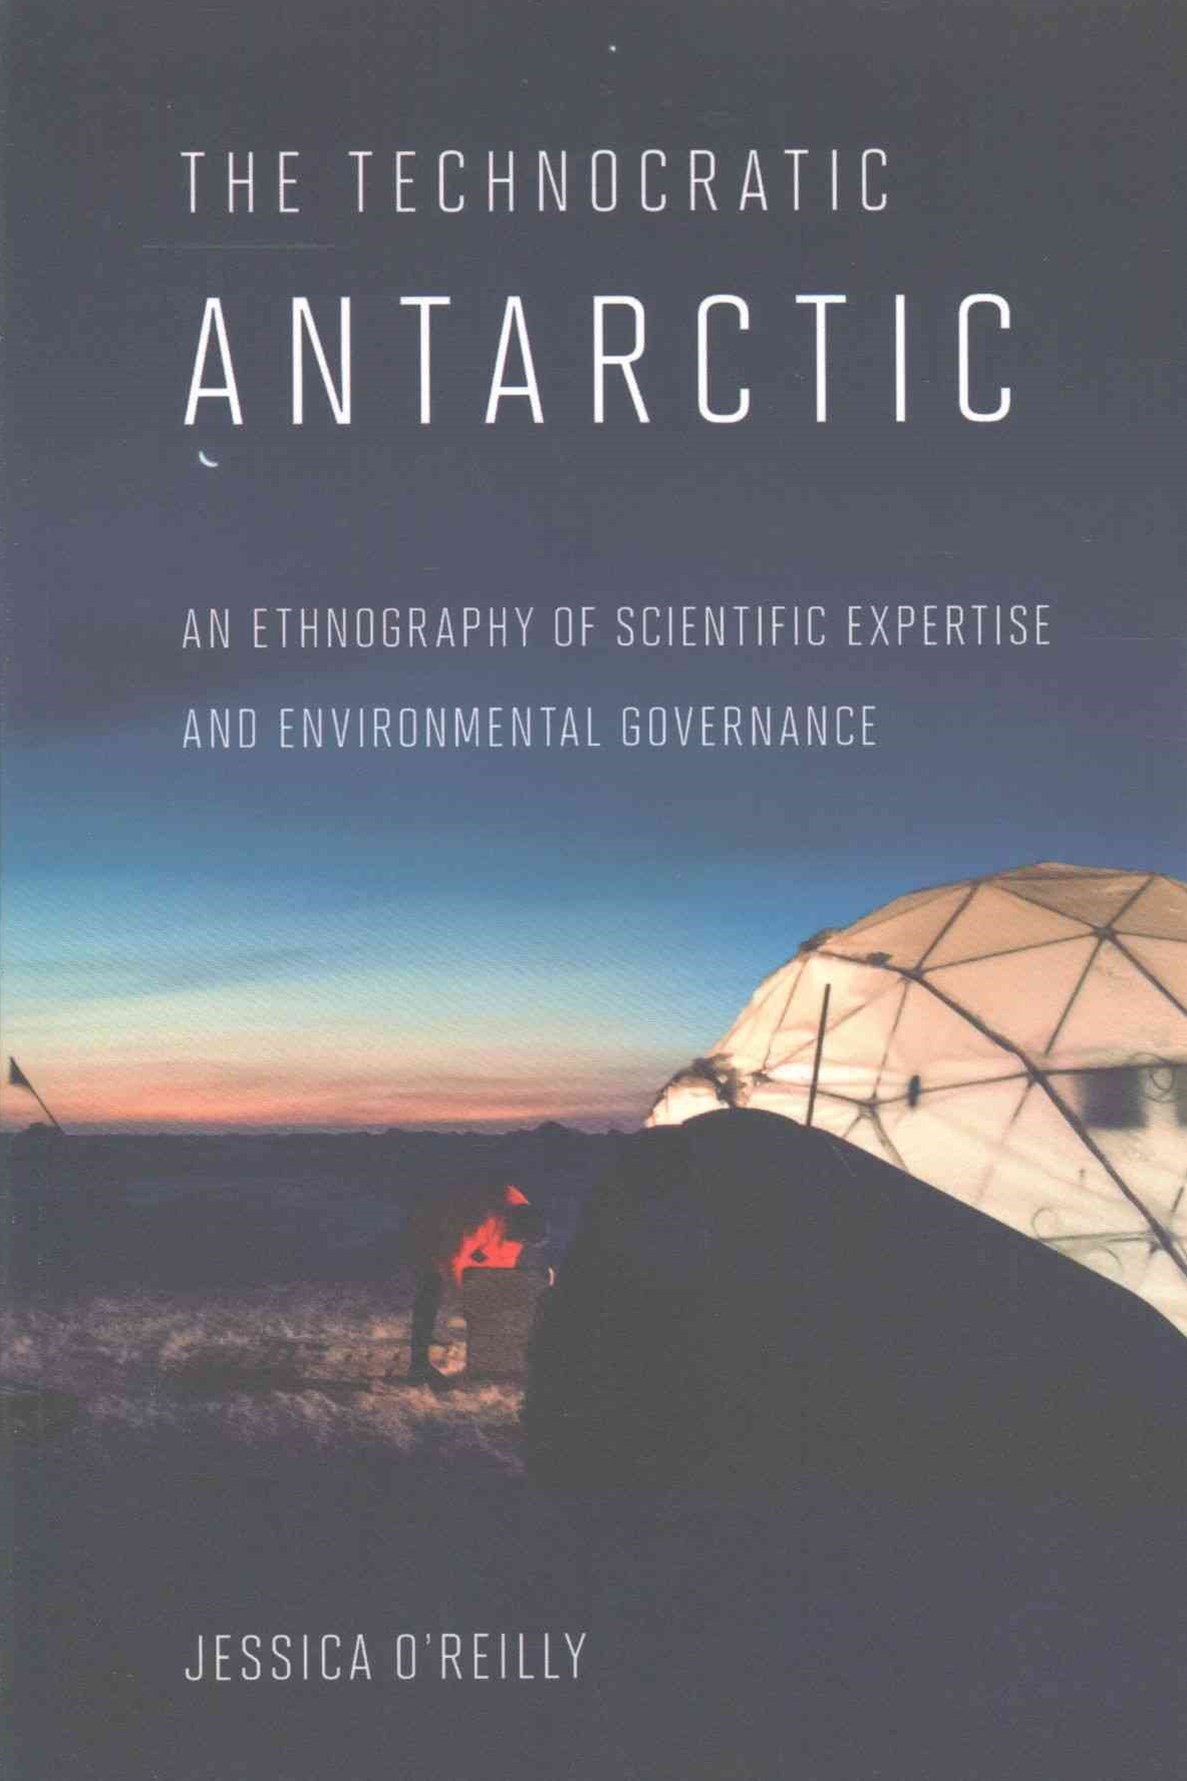 Technocratic Antarctic: An Ethnography of Scientific Expertise and Environmental Governance